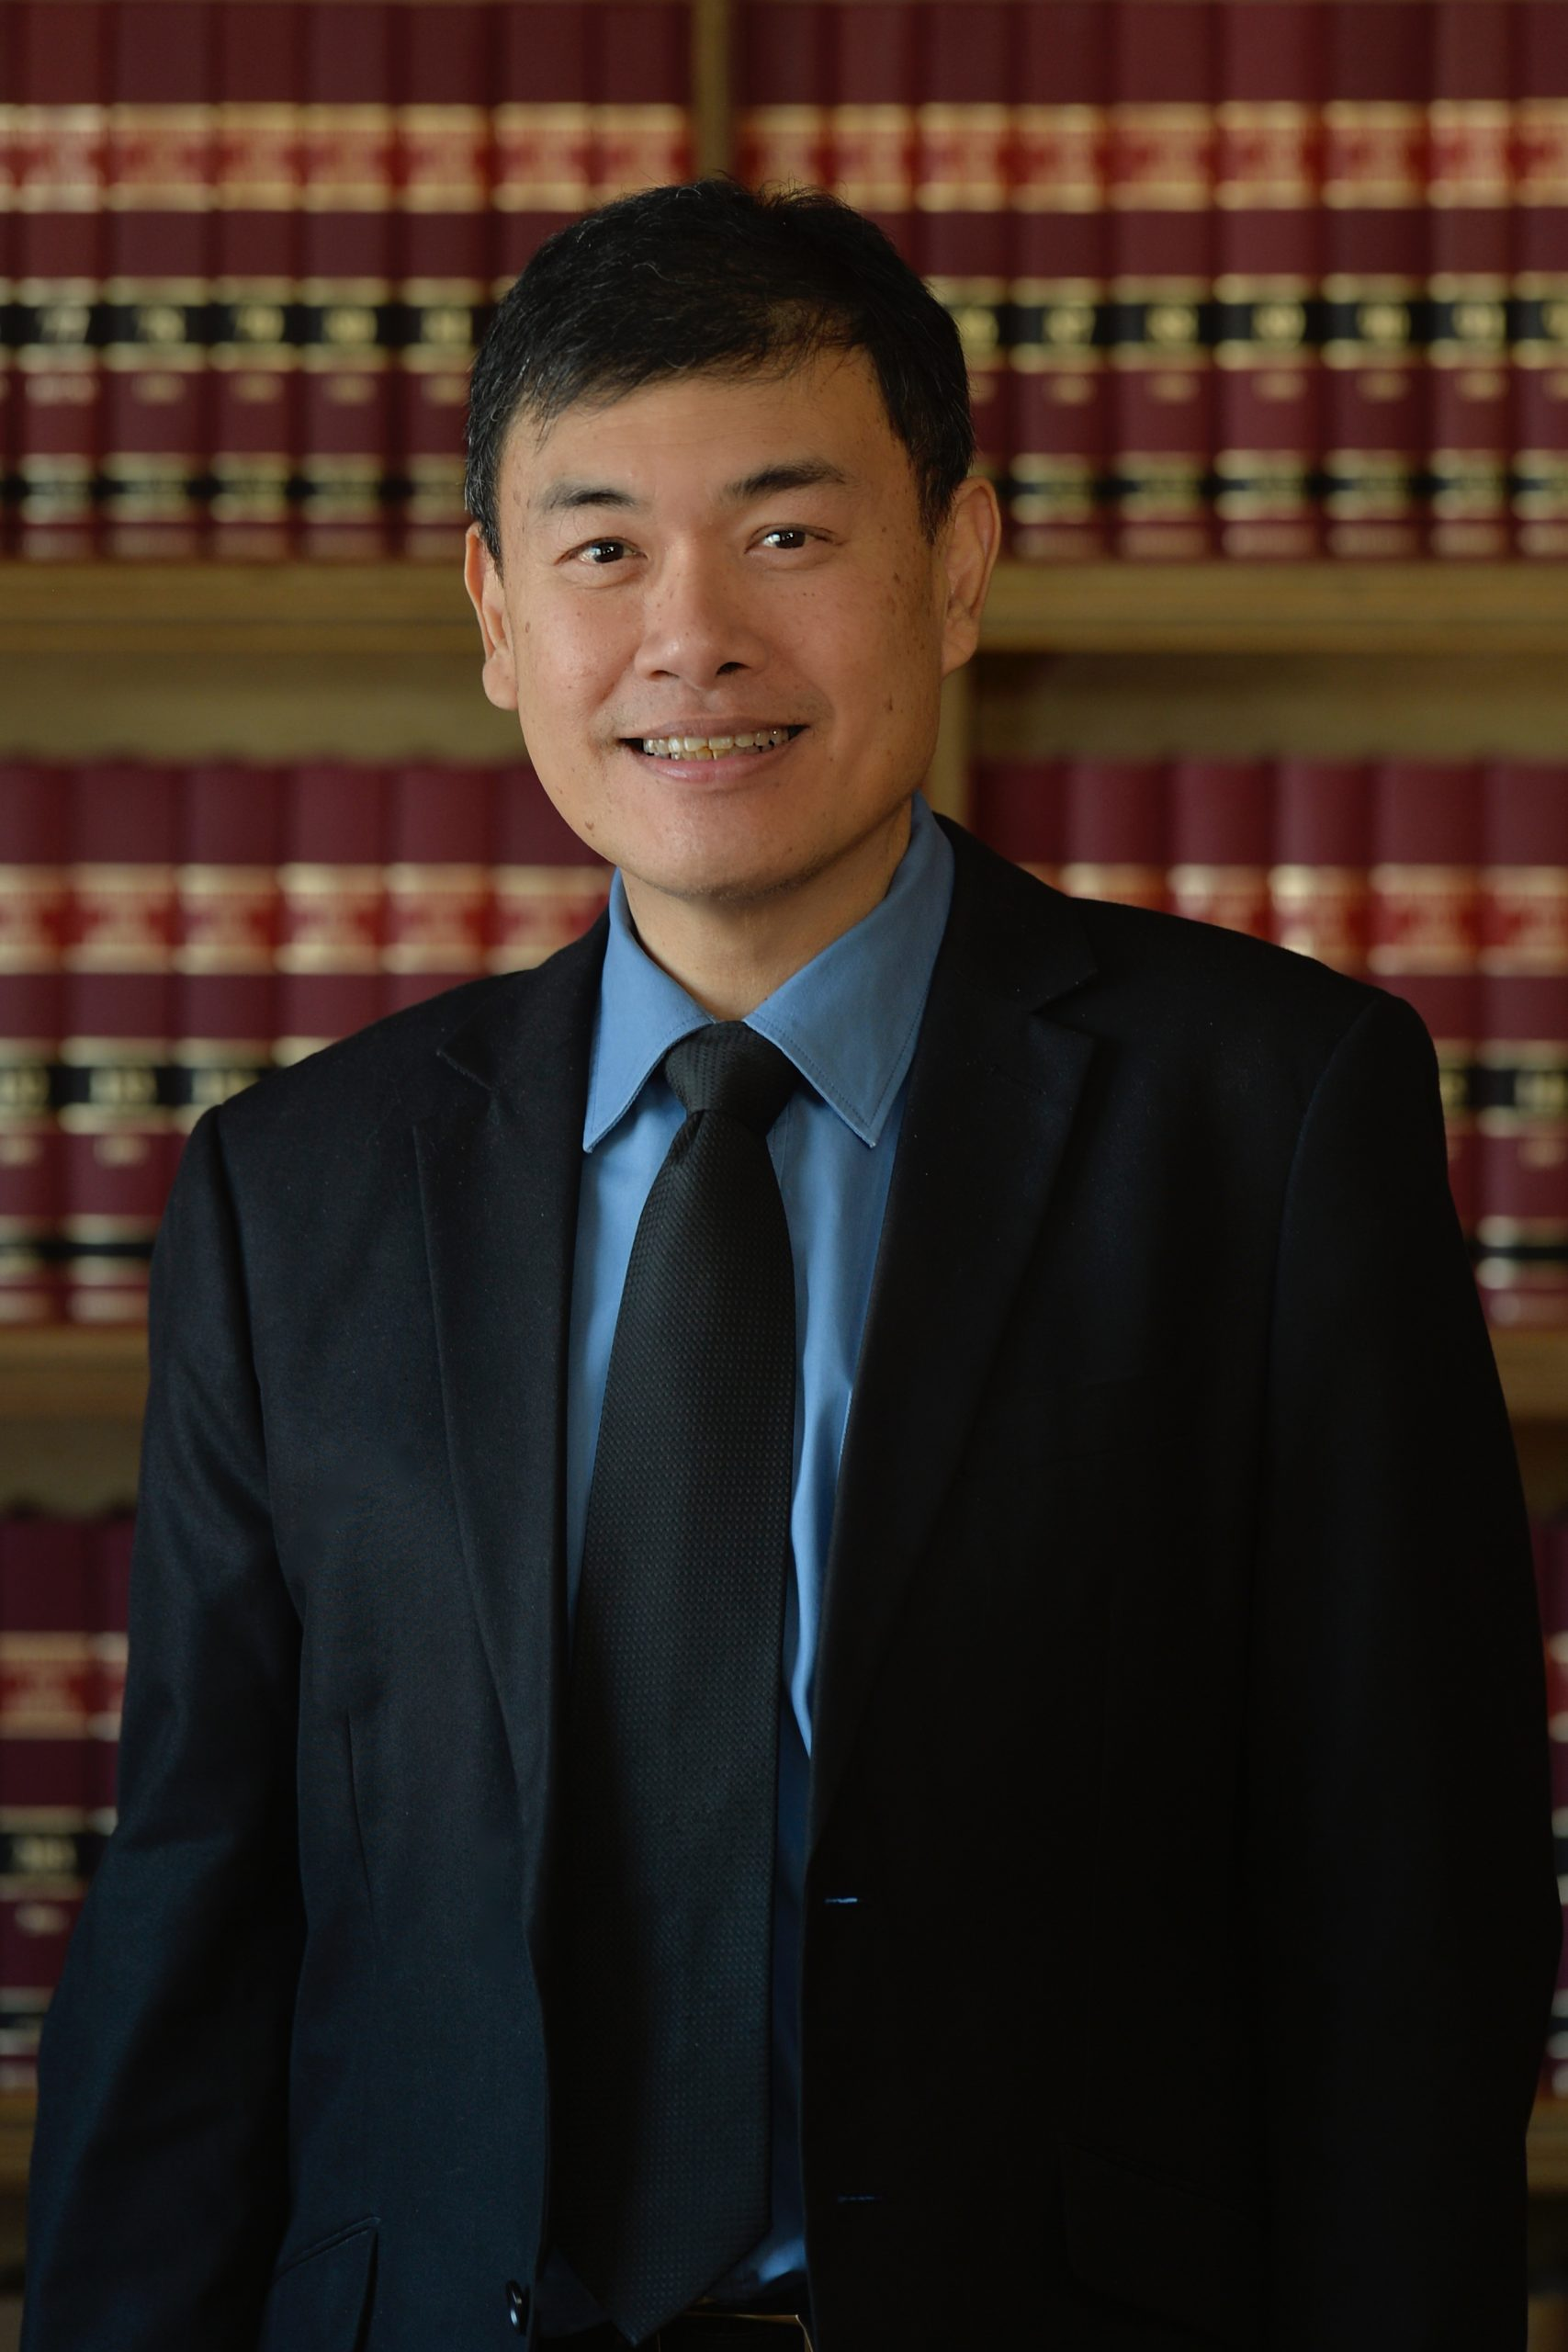 Boon Kim Gwee standing in front of bookcase full of law books